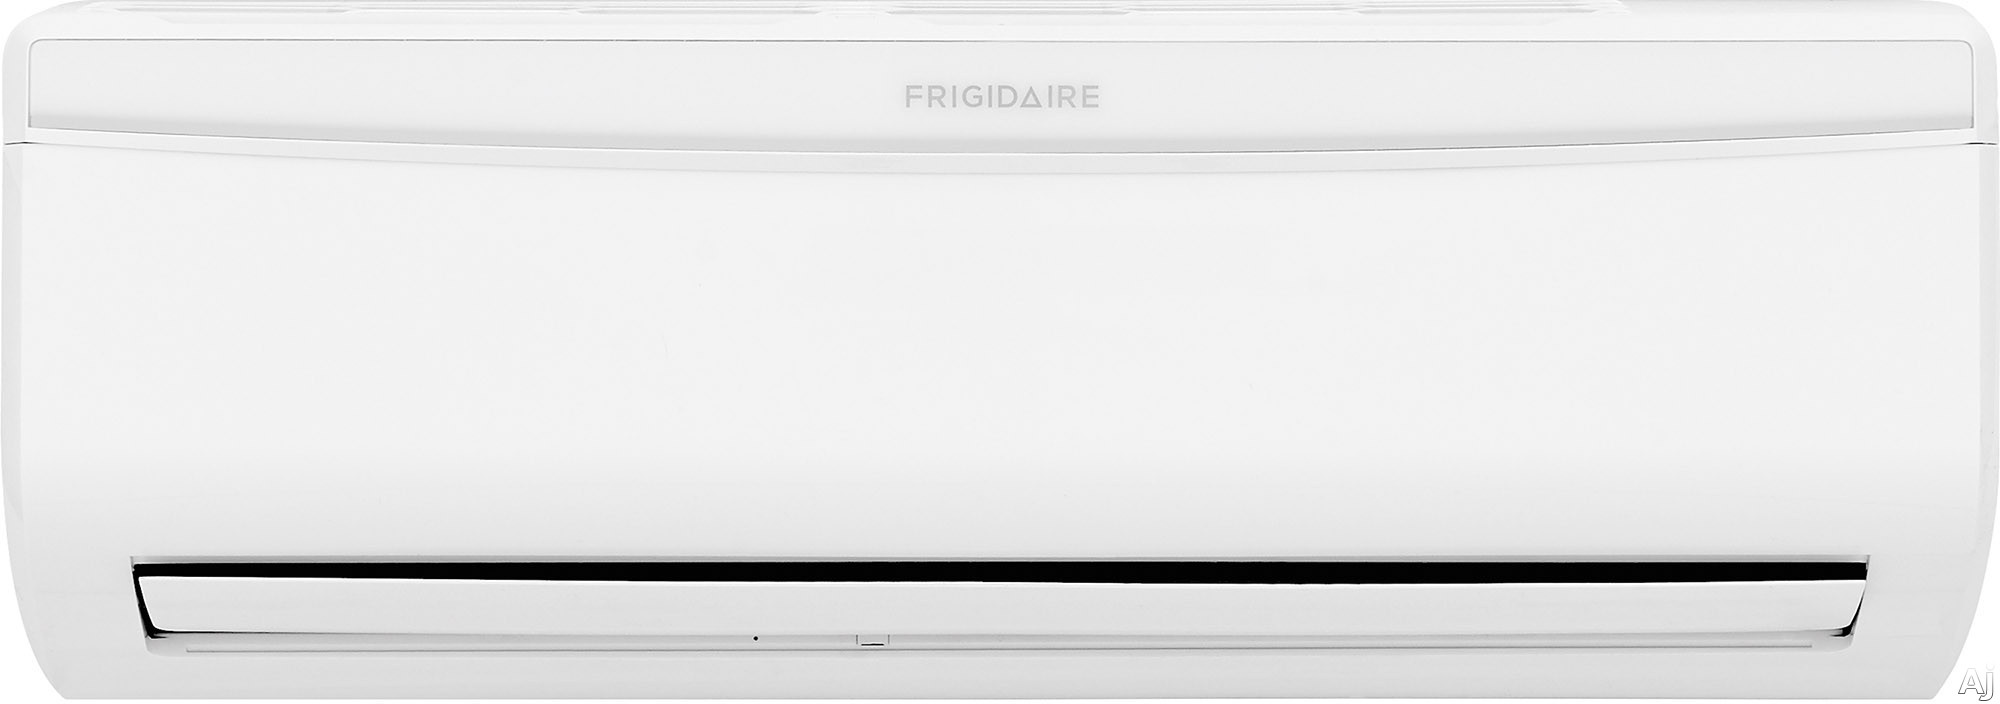 "Frigidaire FFHP183WS2 18,000 BTU Wall-Mount Mini Split Indoor Air Conditioner with 18,000 BTU Cooling, 19,800 BTU Heating, Effortlessâ""¢ Temperature Control, Quick Cool, Quick Warm, Sleep Mode and Programmable 24-Hour Timer FFHP183WS2"